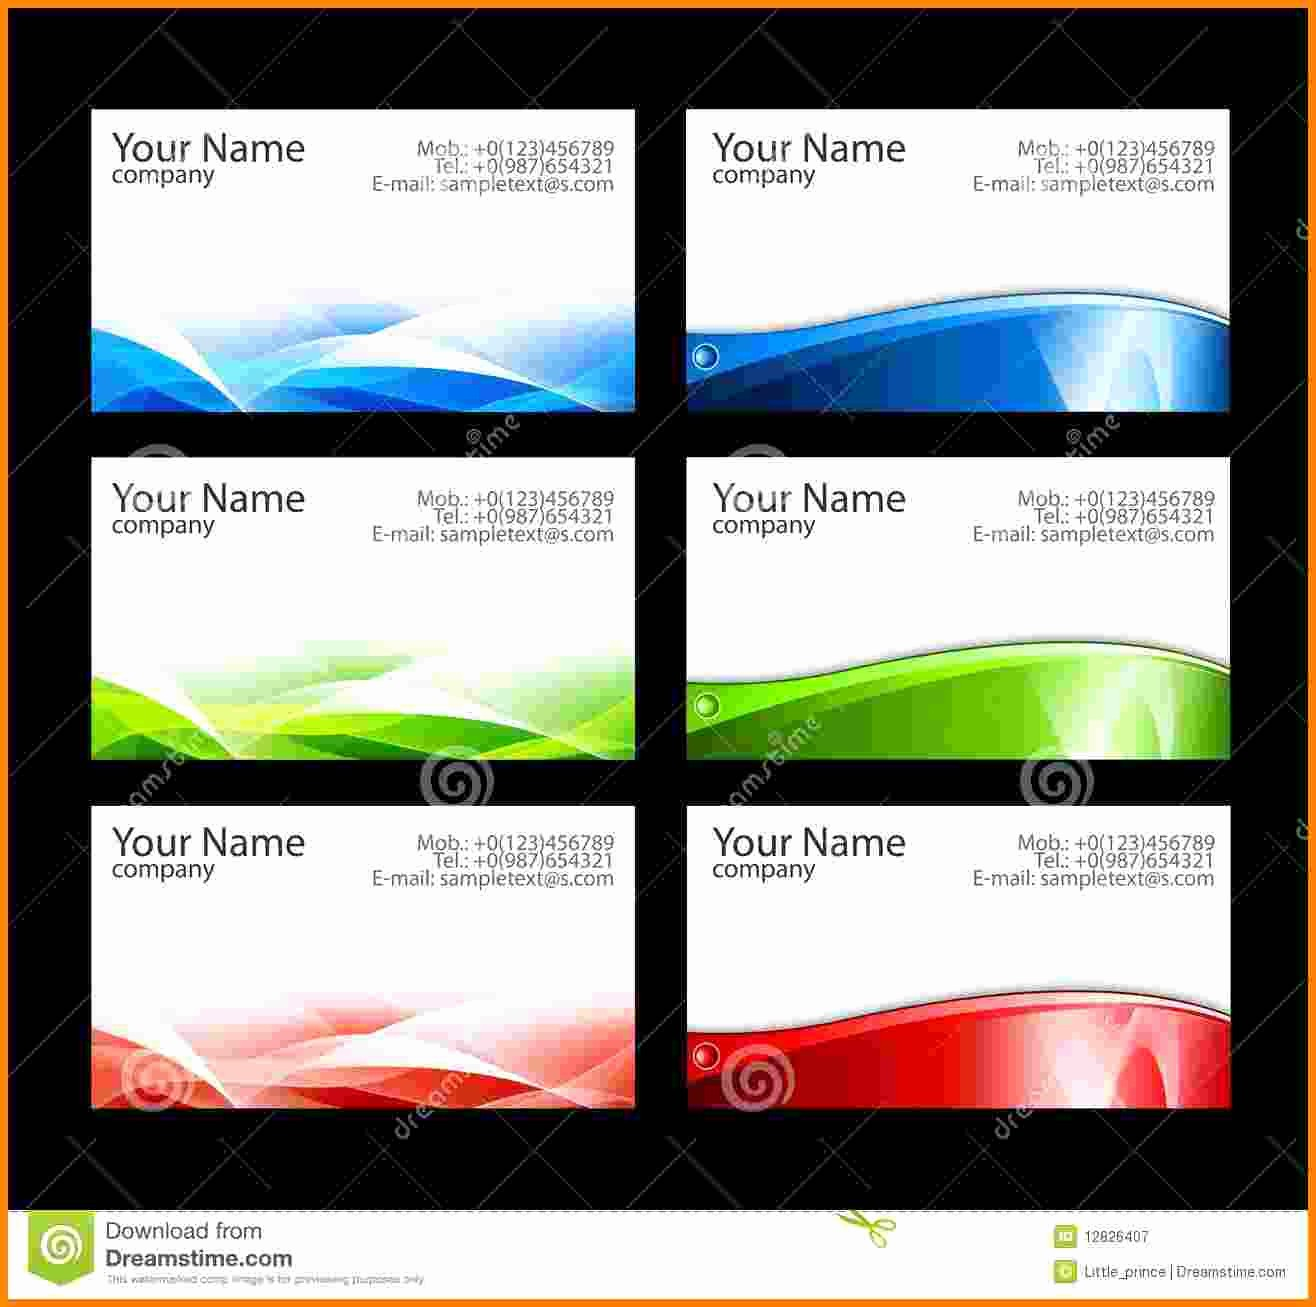 Free Business Templates for Word Fresh 9 Blank Business Card Template Illustrator